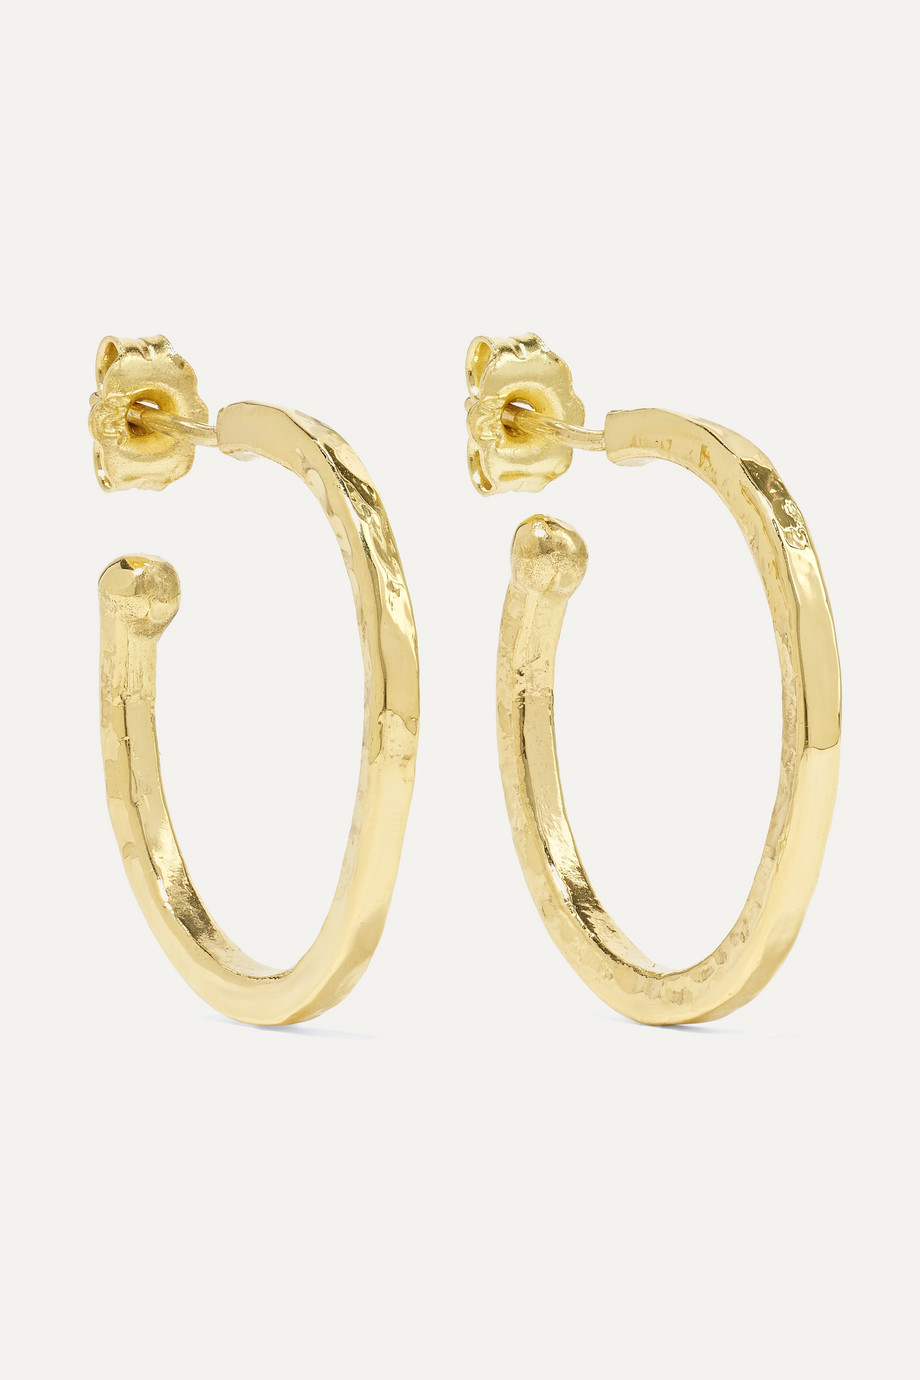 JENNIFER MEYER Hammered 18-karat gold hoop earrings